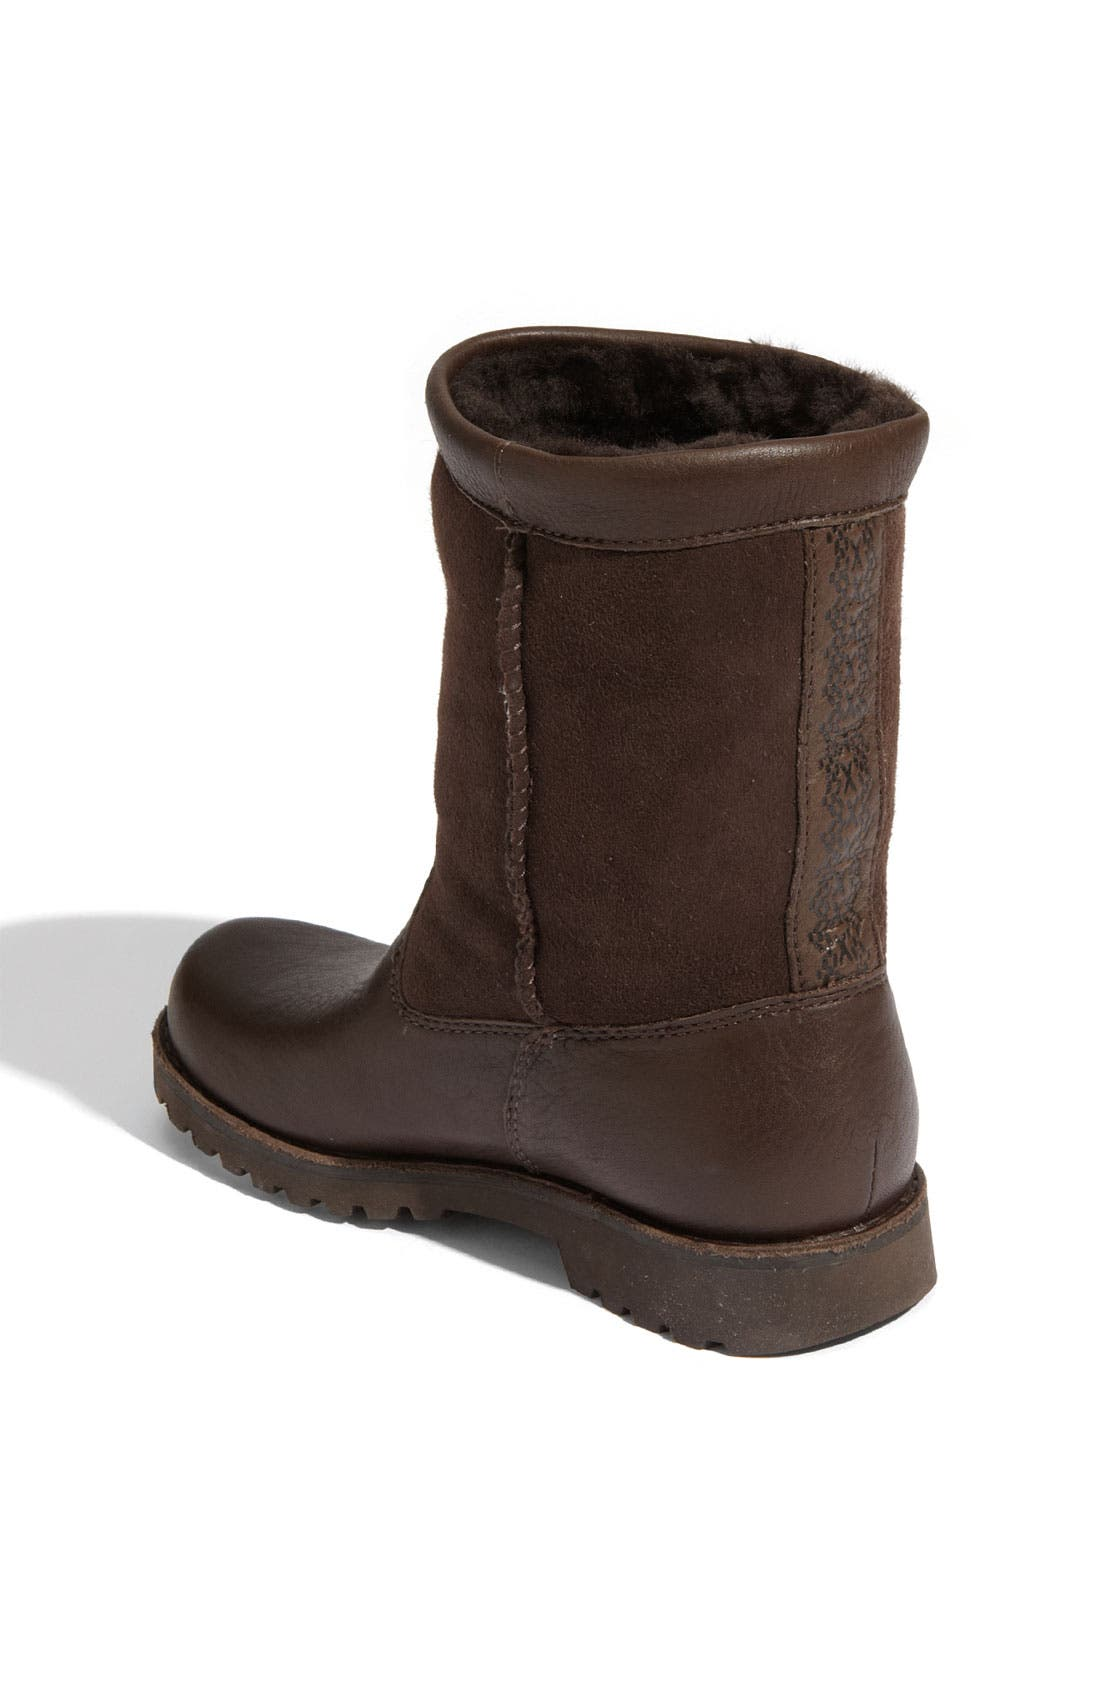 Alternate Image 2  - UGG® 'Riverton' Boot (Toddler, Little Kid & Big Kid)